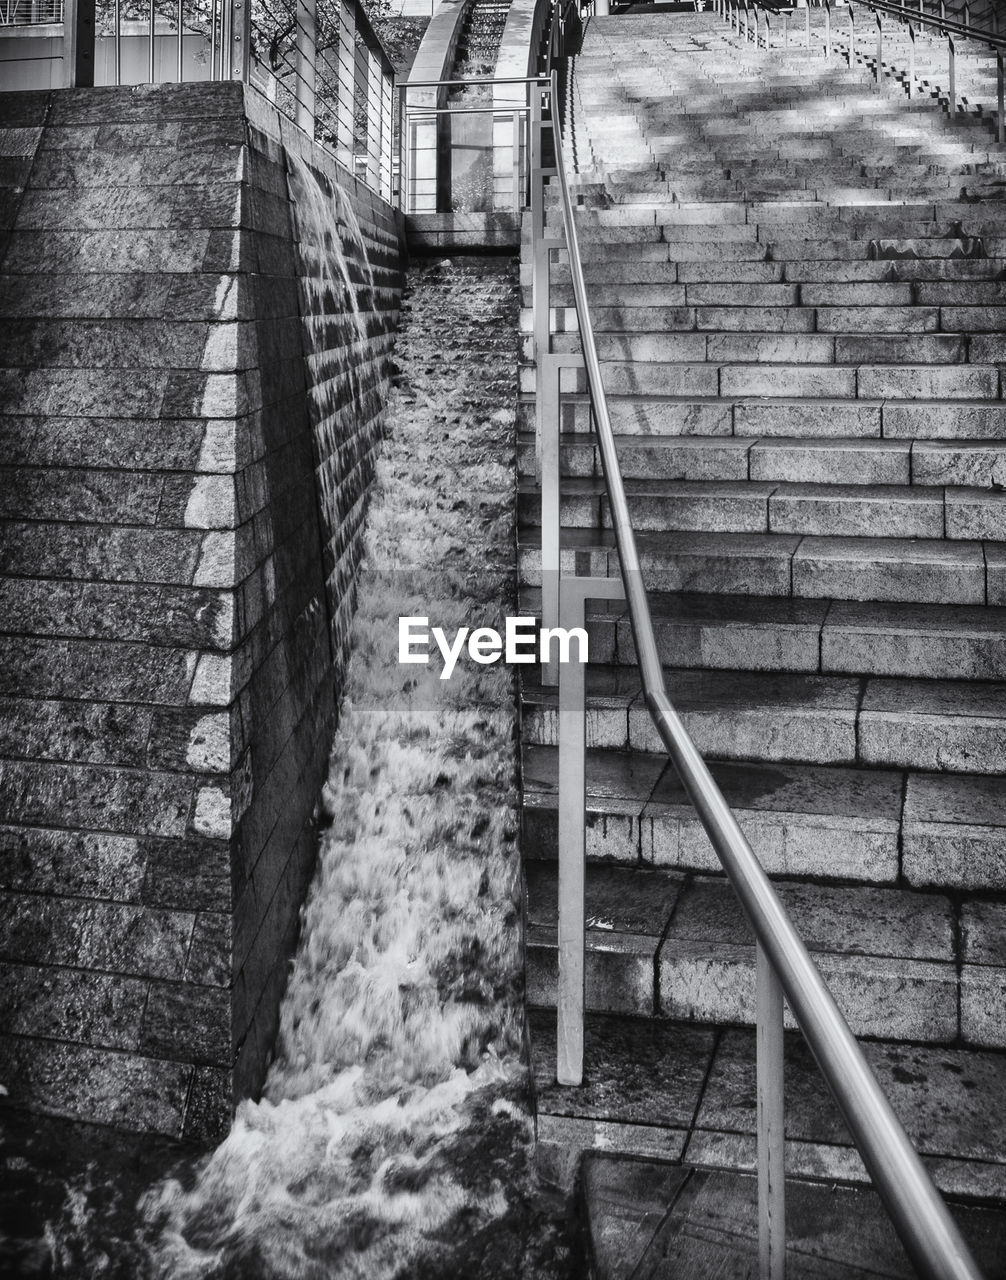 Waterfall by staircase